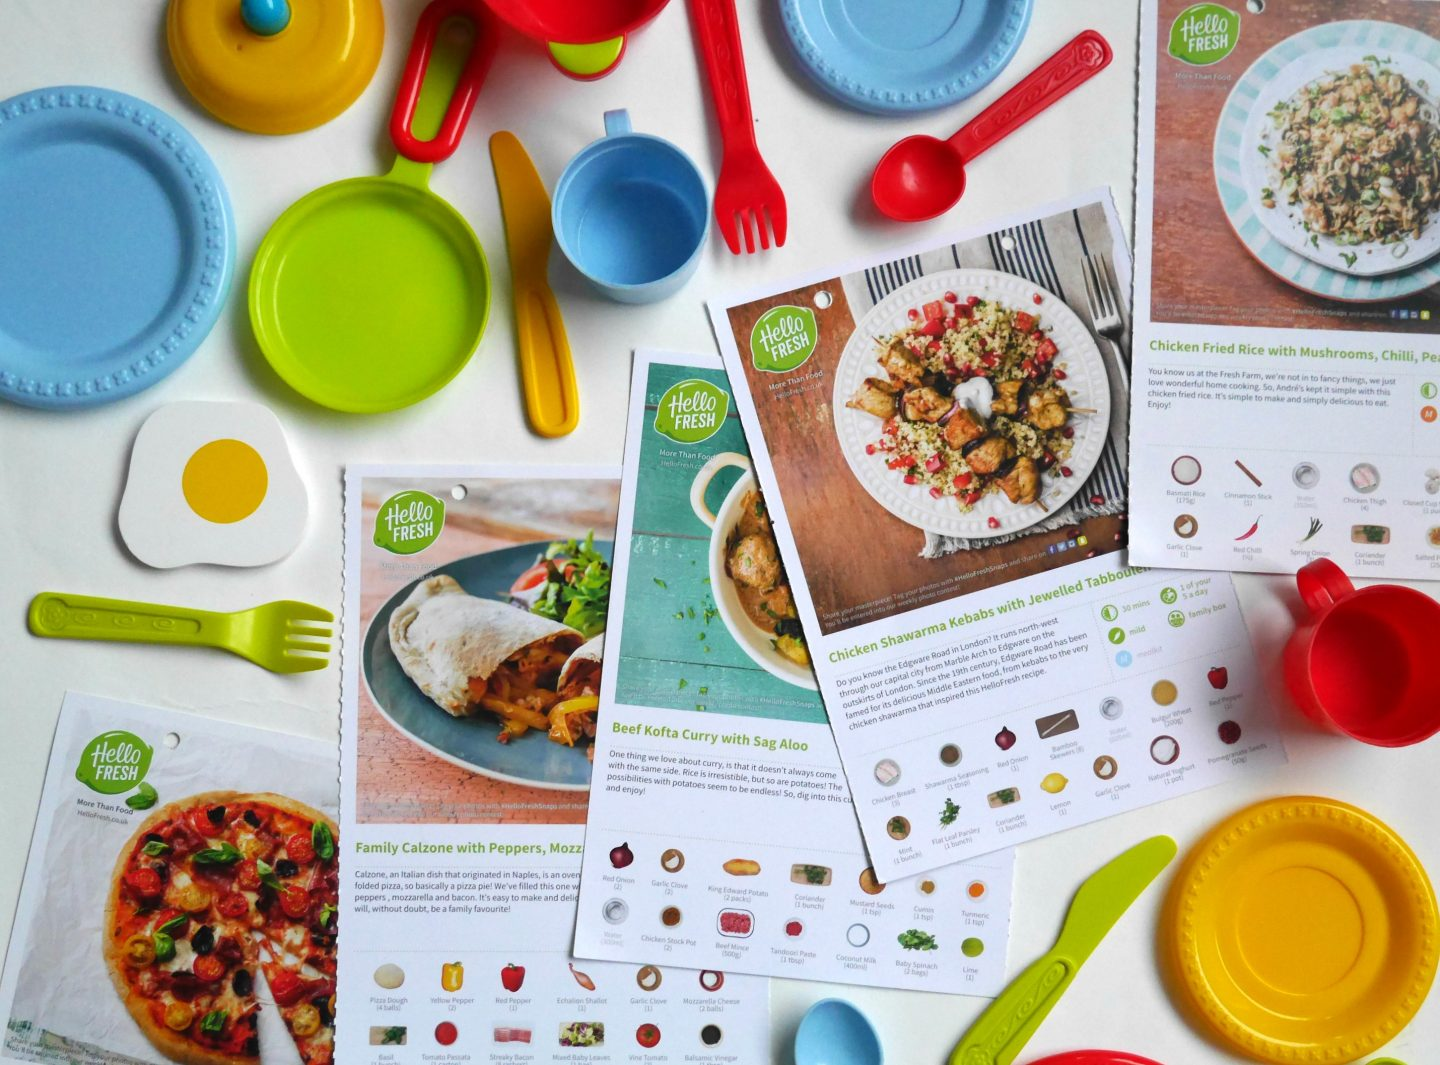 Taking the HelloFresh Dinner Time Challenge - recipes